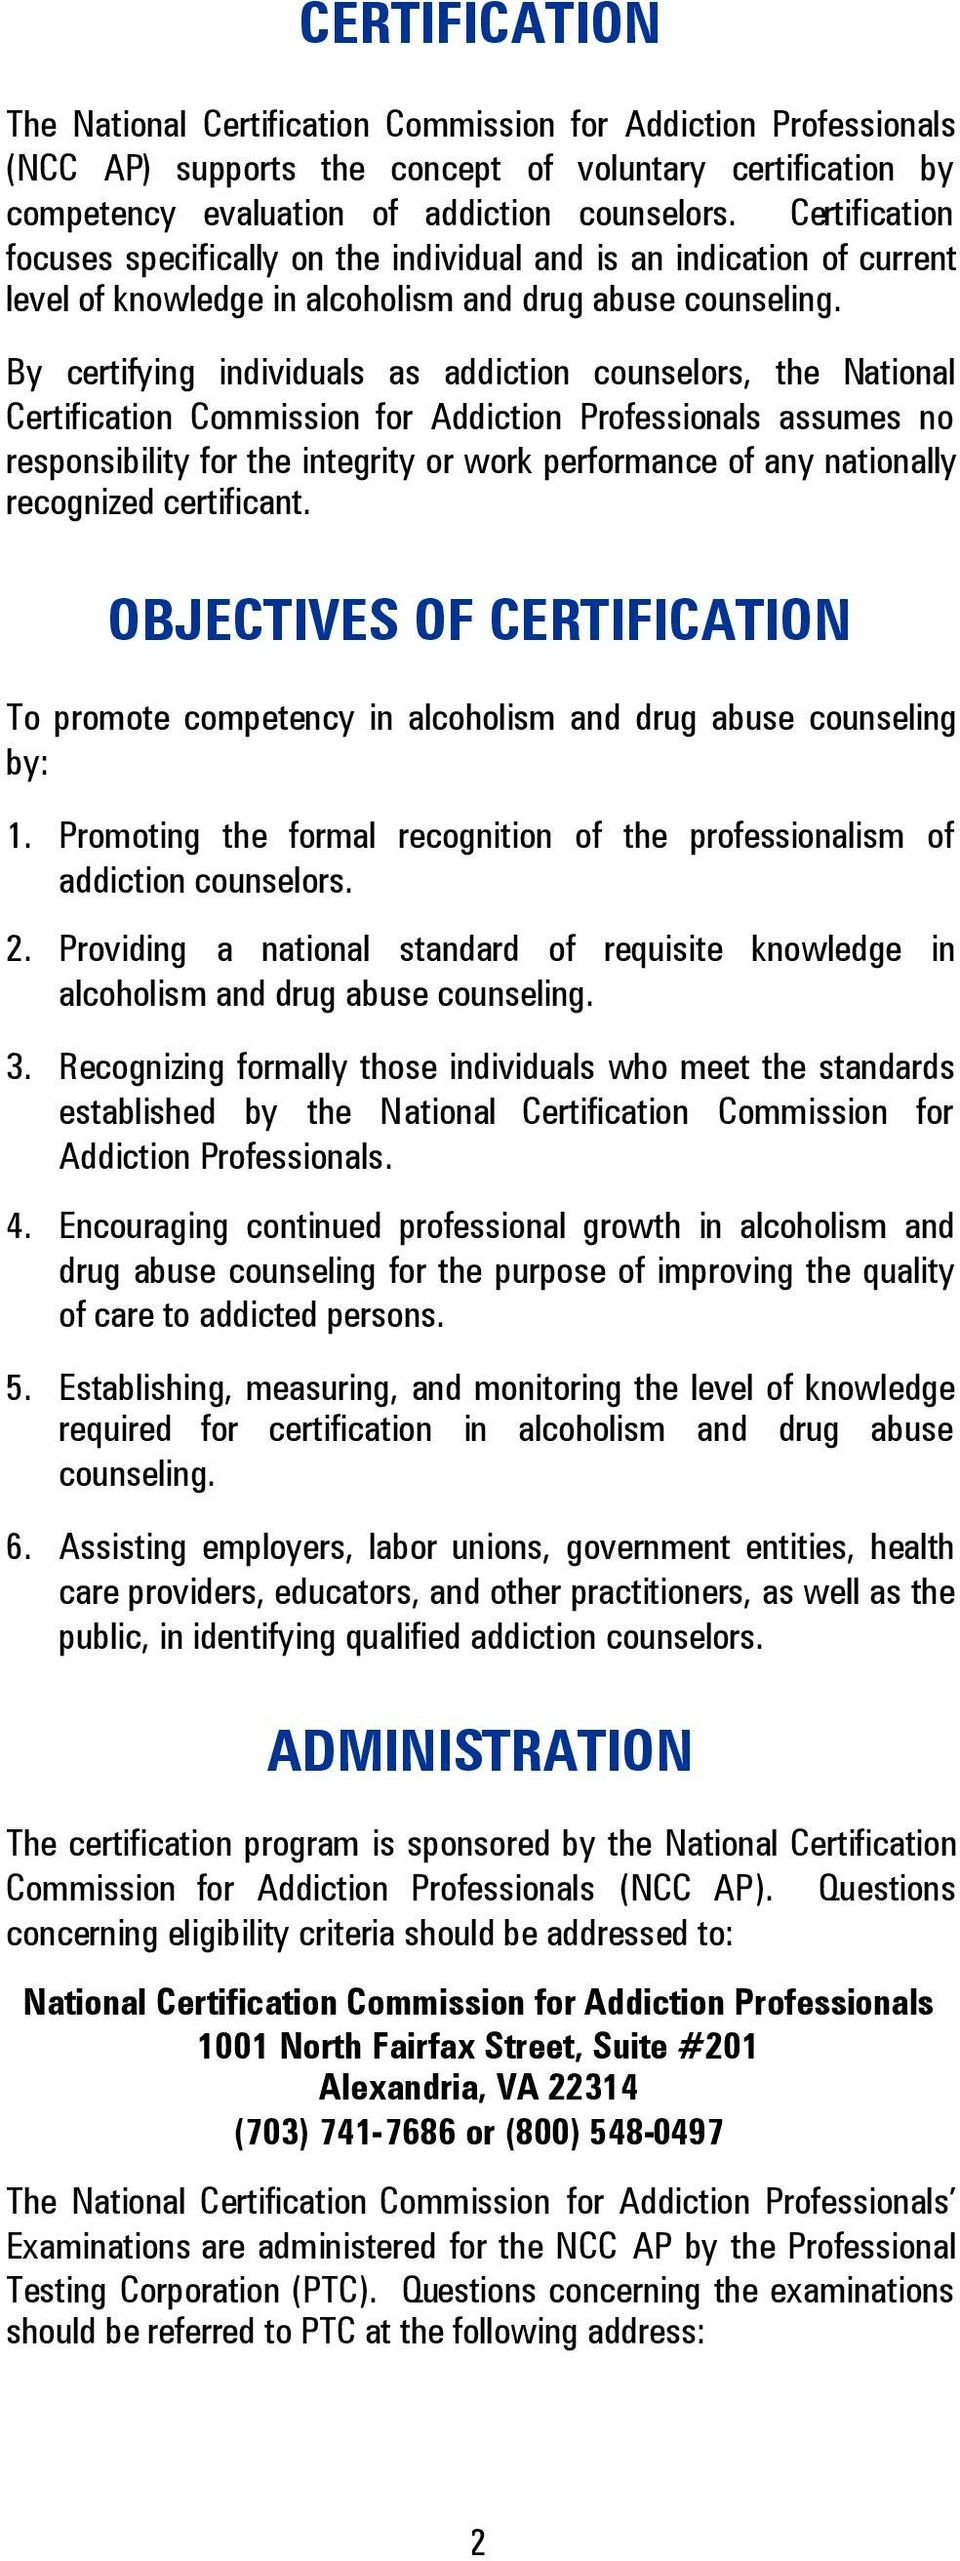 By certifying individuals as addiction counselors, the National Certification Commission for Addiction Professionals assumes no responsibility for the integrity or work performance of any nationally